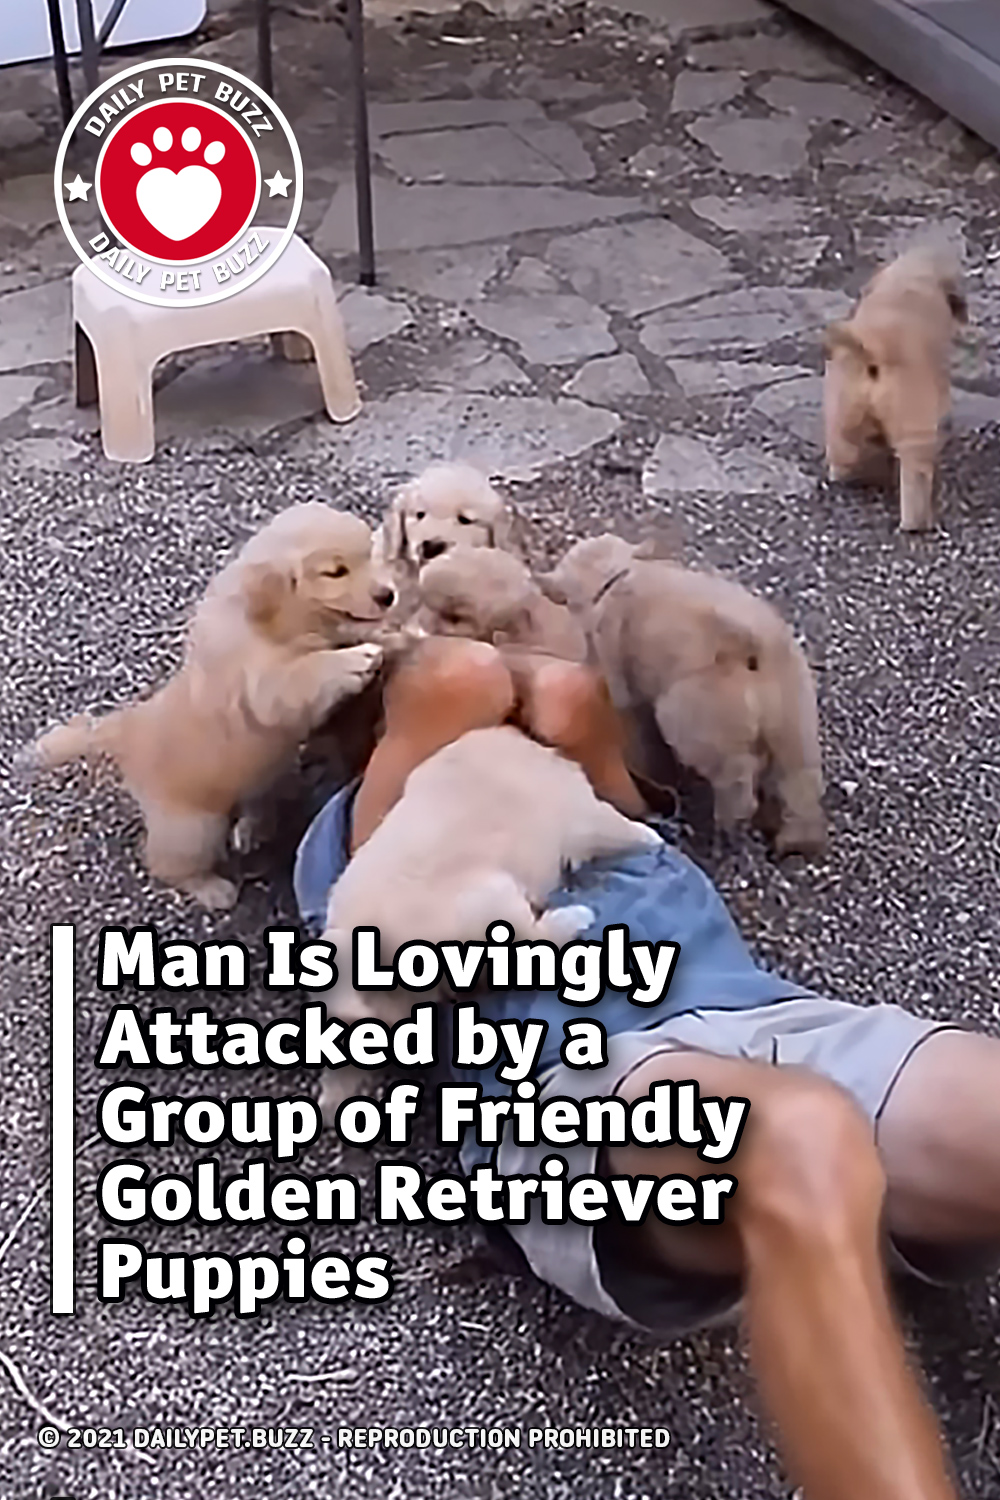 Man Is Lovingly Attacked by a Group of Friendly Golden Retriever Puppies